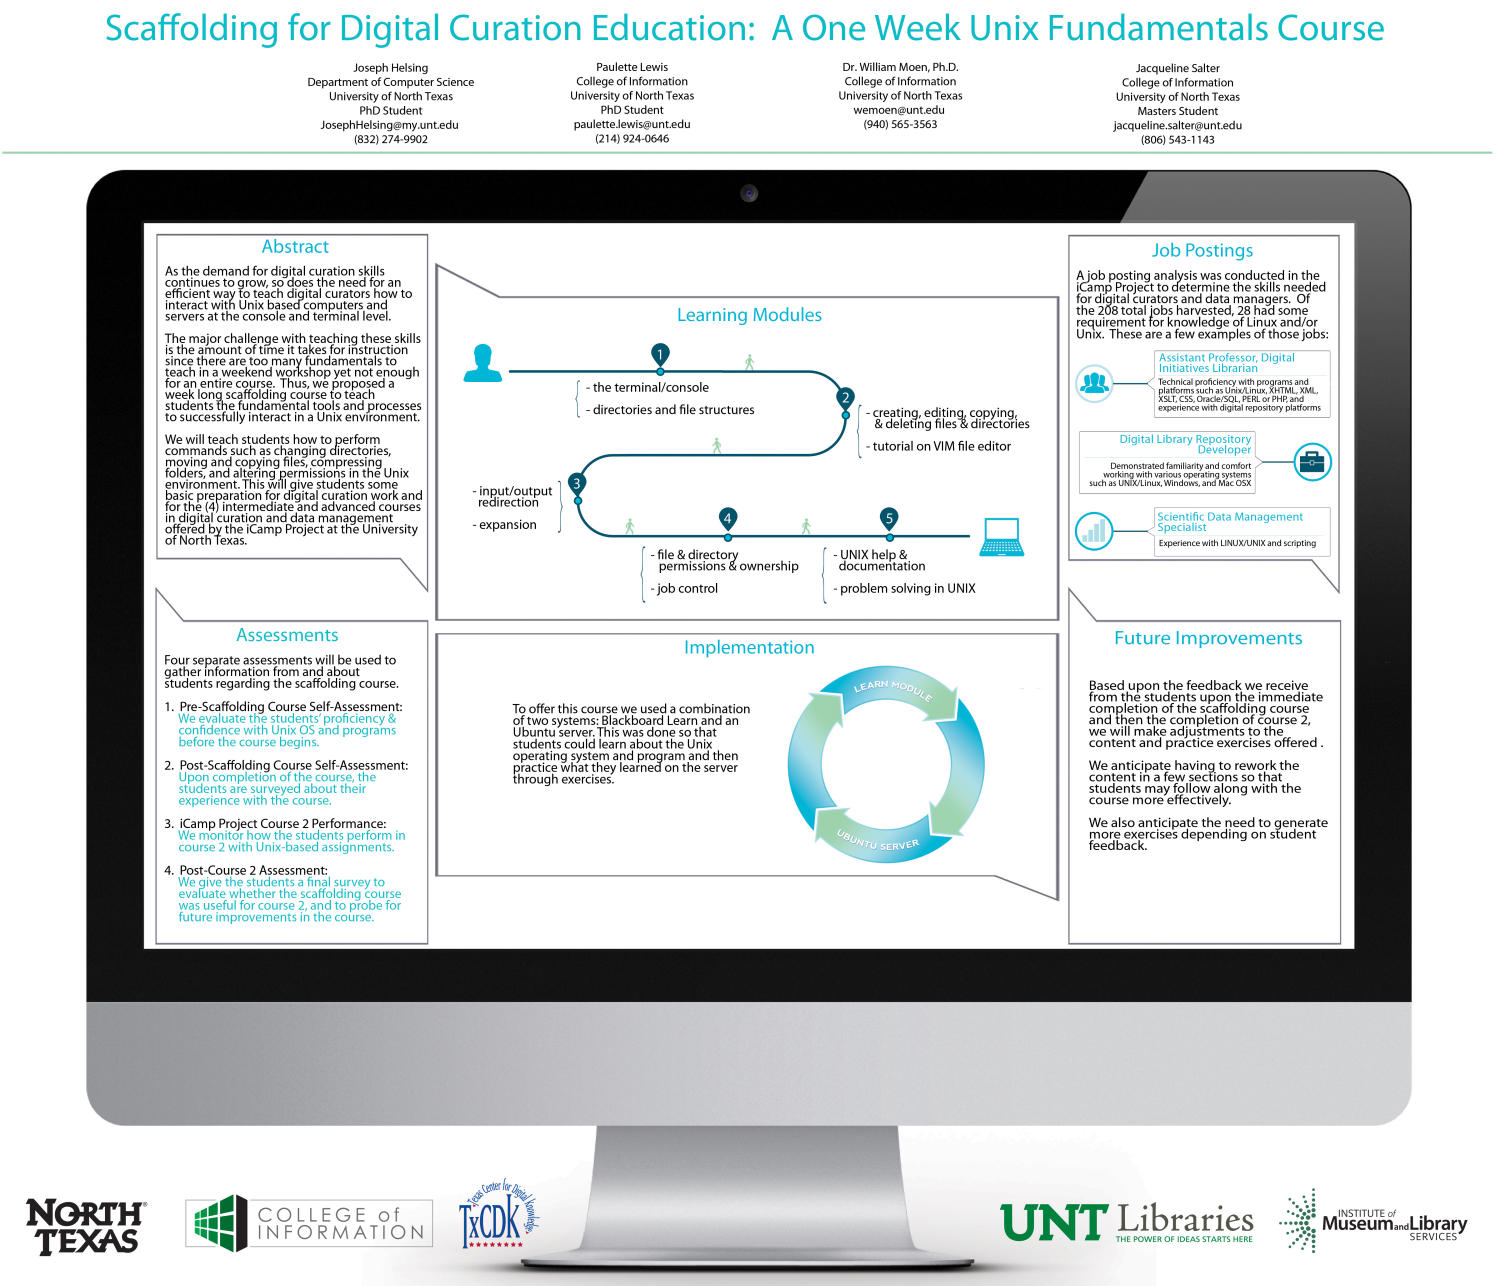 Scaffolding for Digital Curation Education: A One Week Unix Fundamentals Course                                                                                                      [Sequence #]: 1 of 1